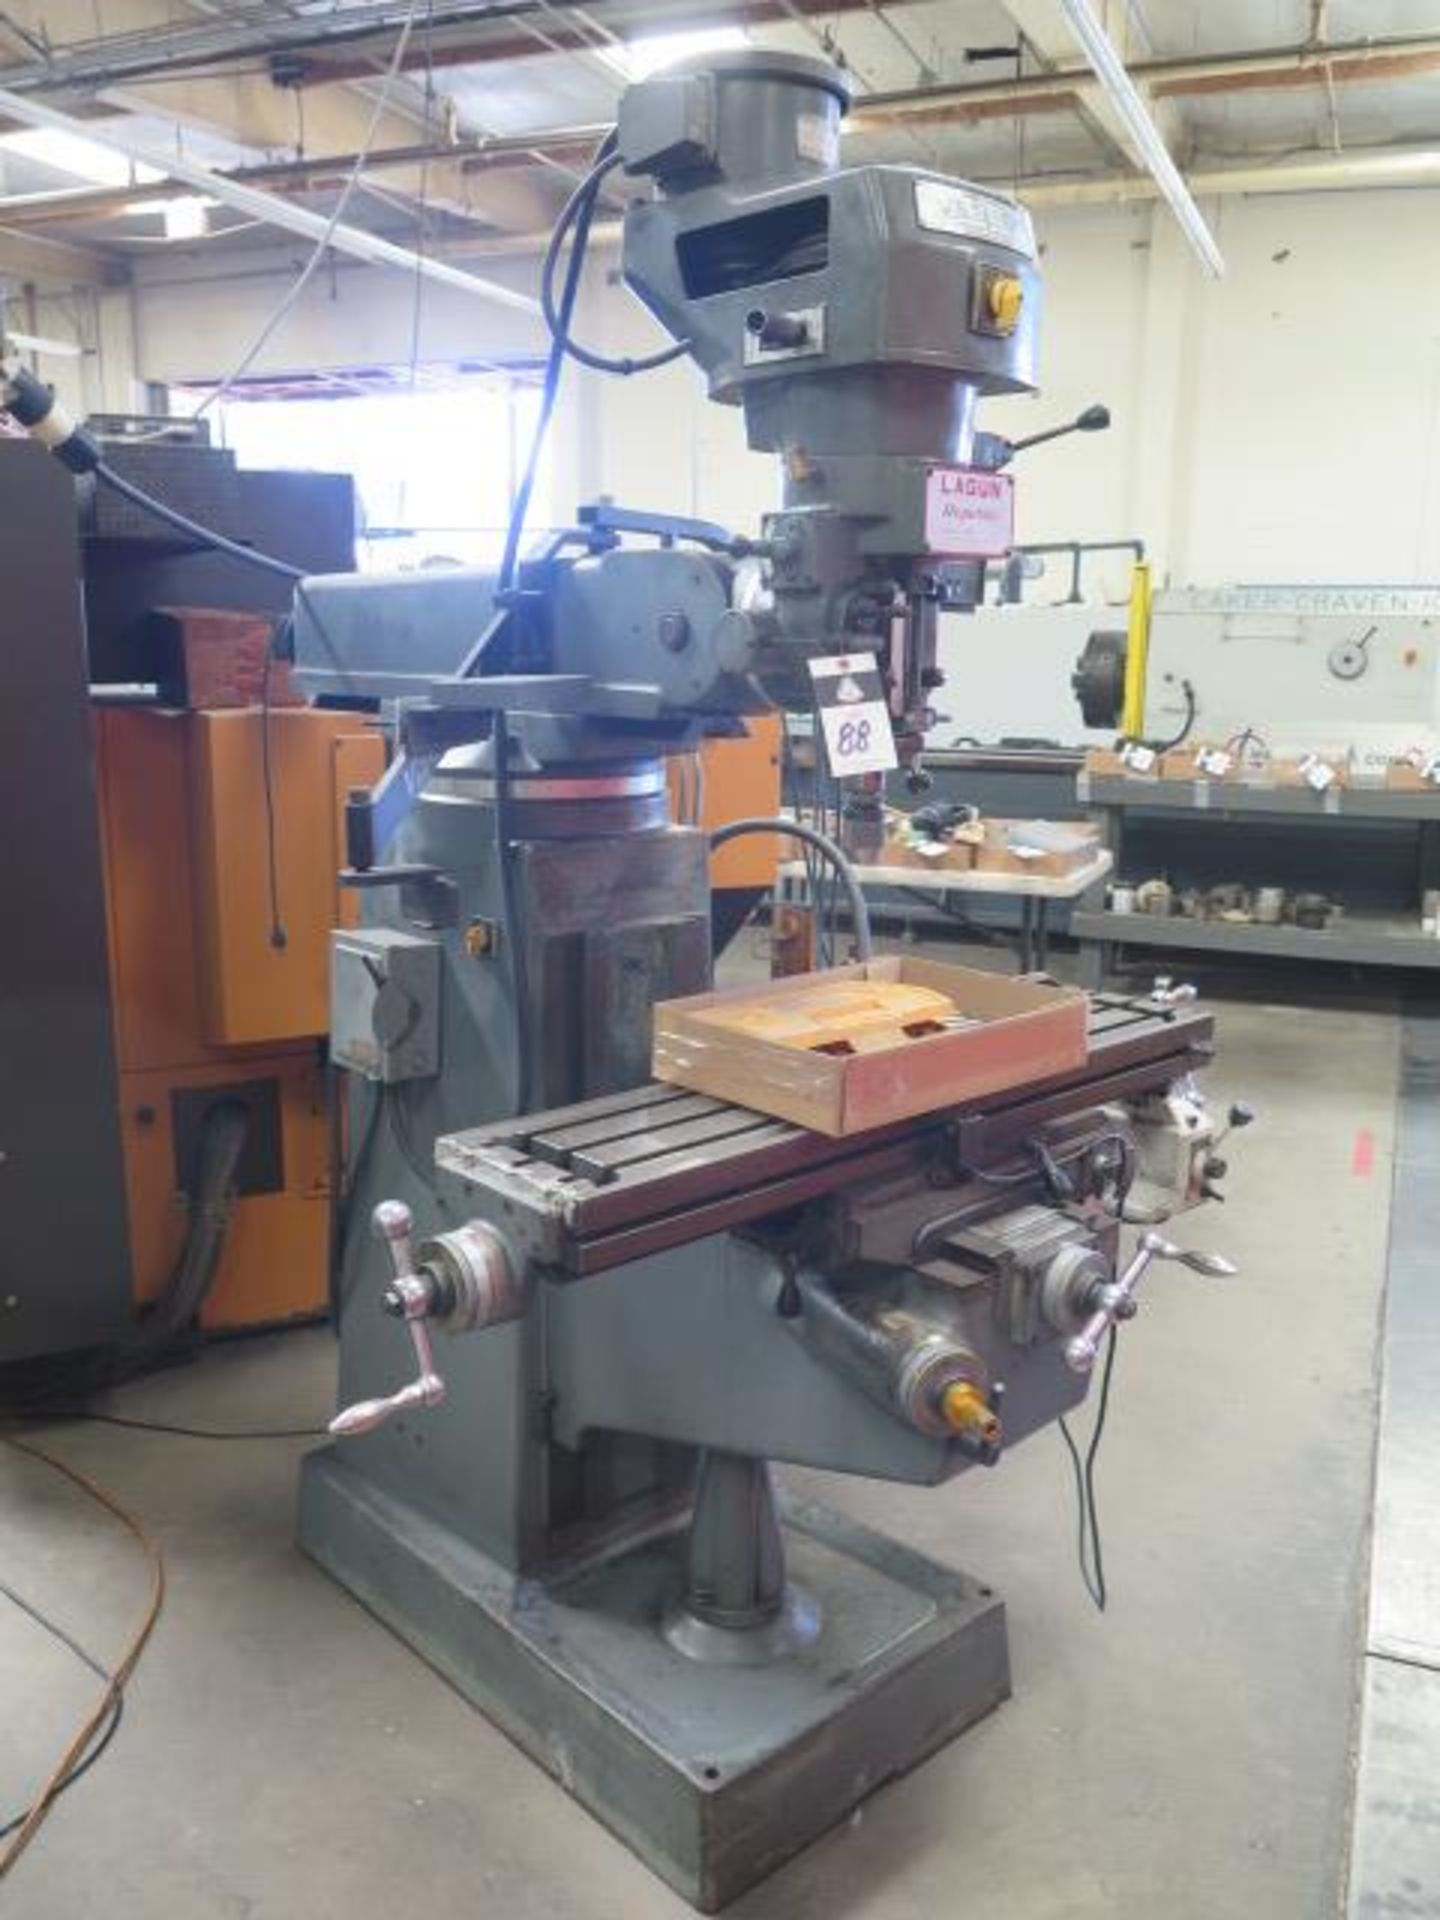 """Lagun FT-1 Vertical Mill w/ Mitutoyo DRO, 55-2940 RPM, 8-Speeds, Power Feed, 9"""" x 42"""" Table (SOLD - Image 2 of 14"""